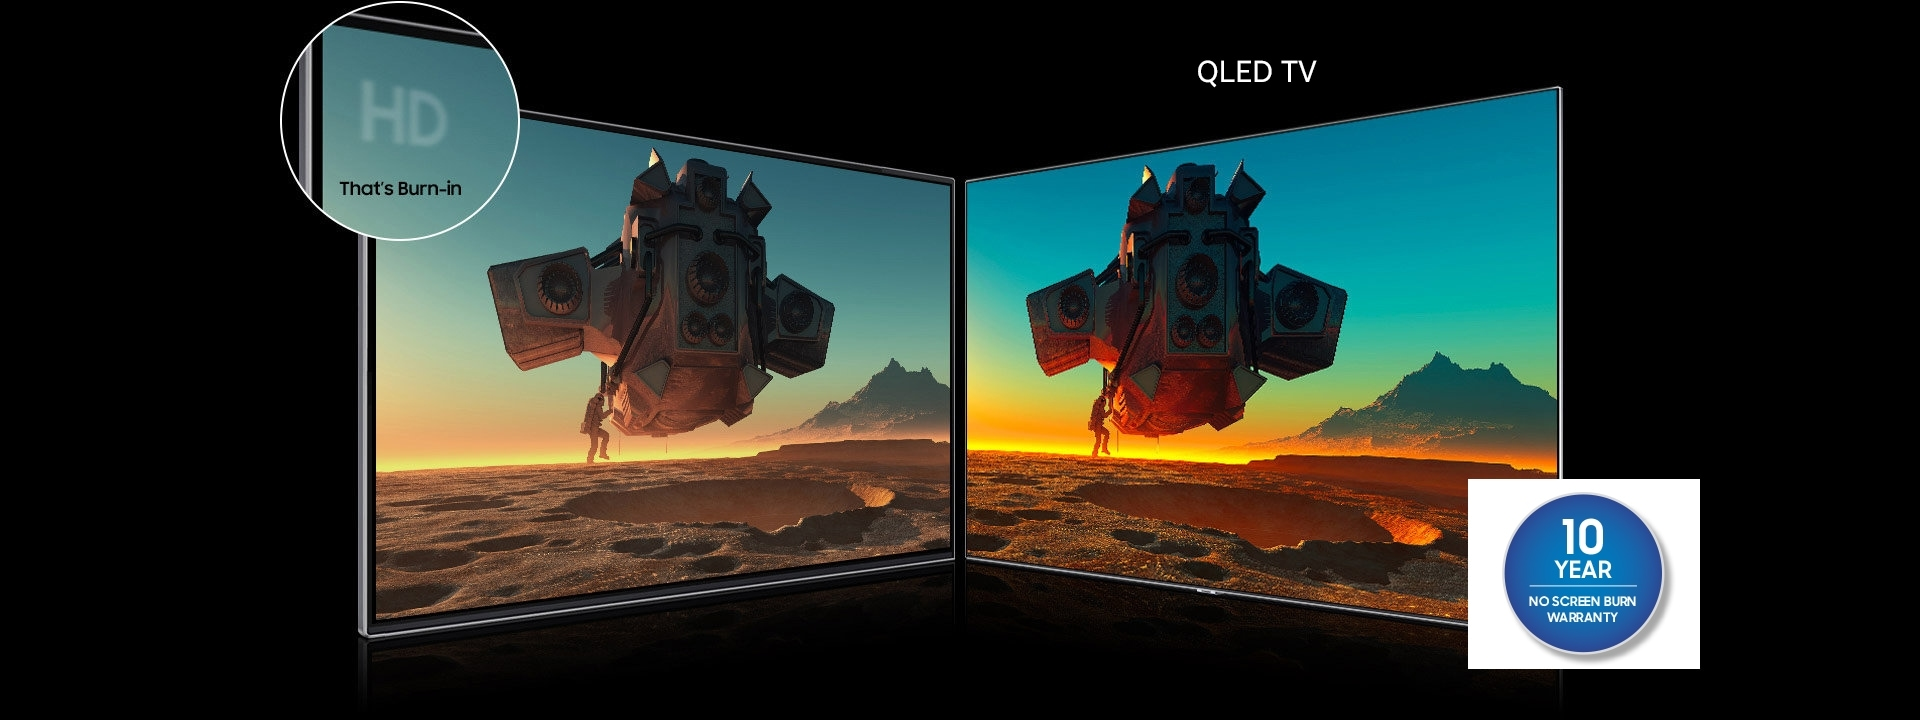 On the left is an OLED TV and on the right a QLED TV, both showing the same image of a spaceship. The HD logo on the left OLED TV looks blurred due to screen burn-in.